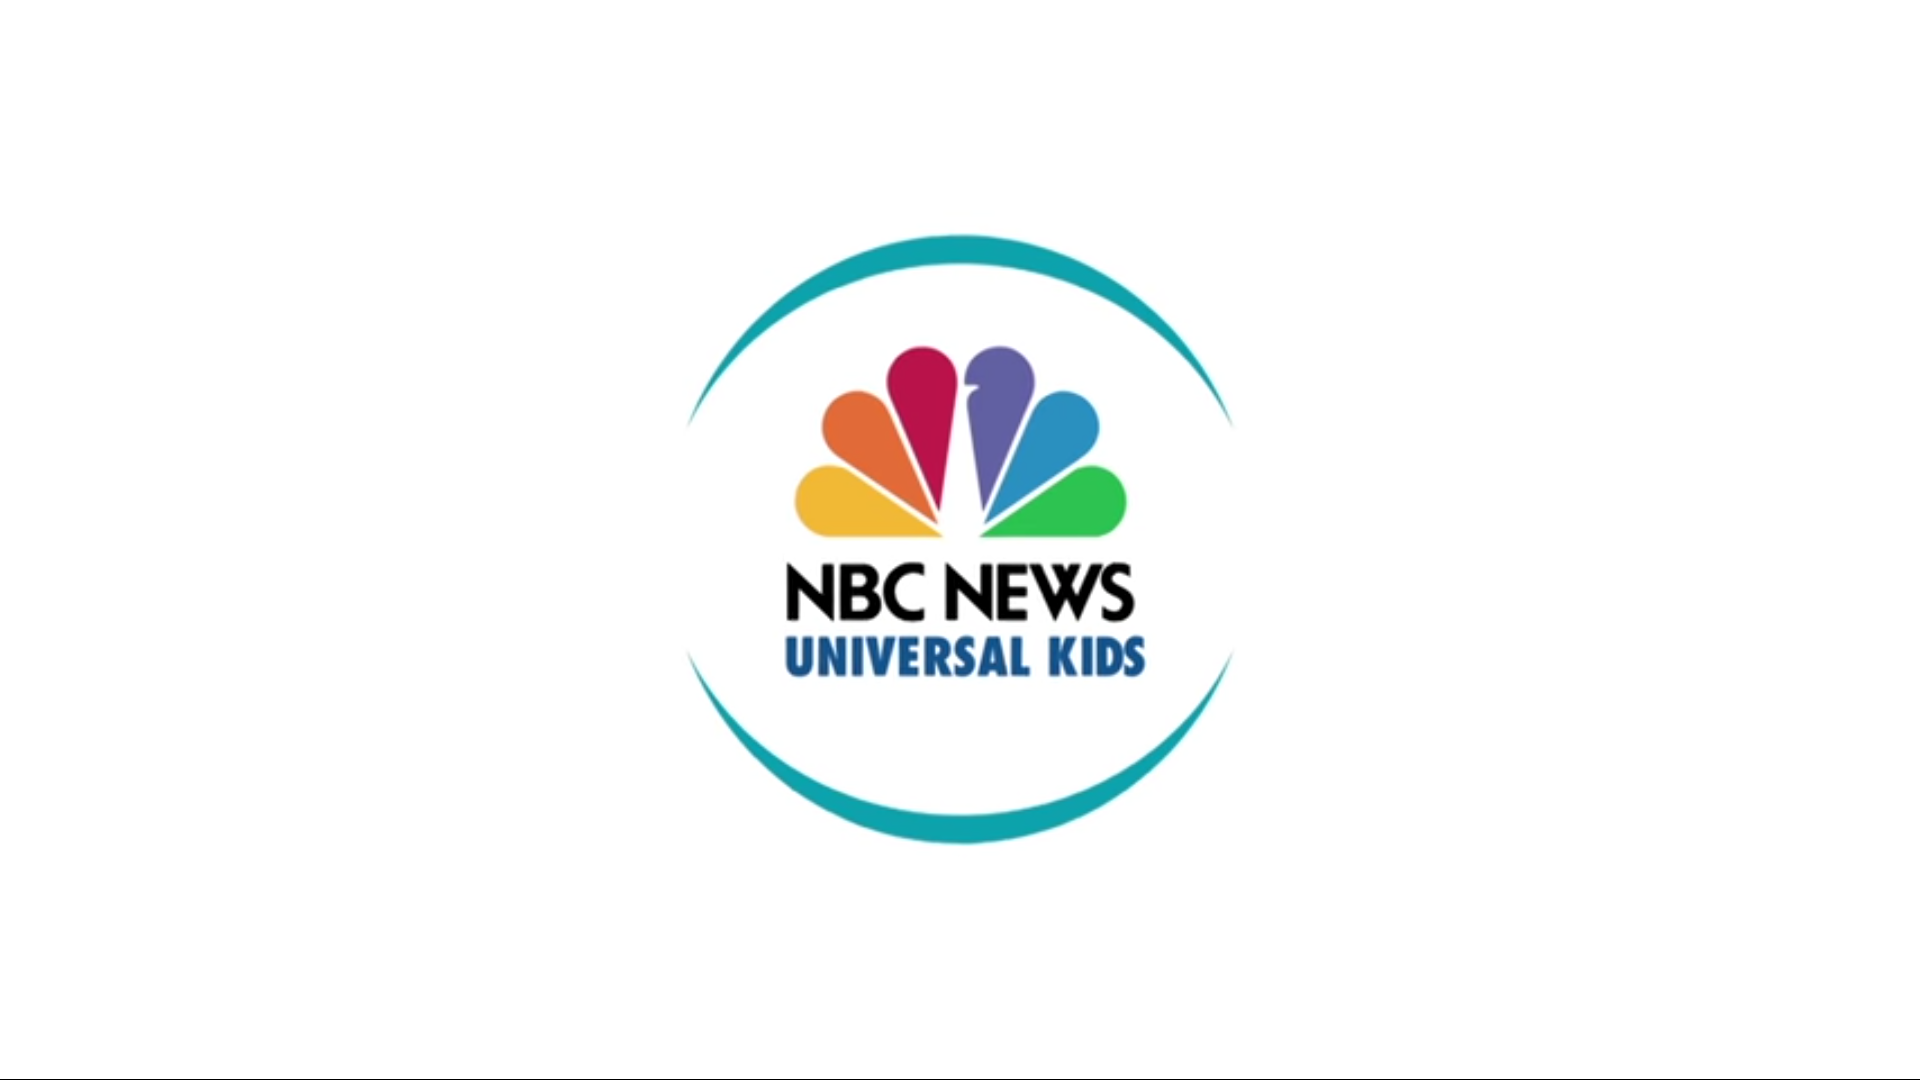 NBC News for Universal Kids